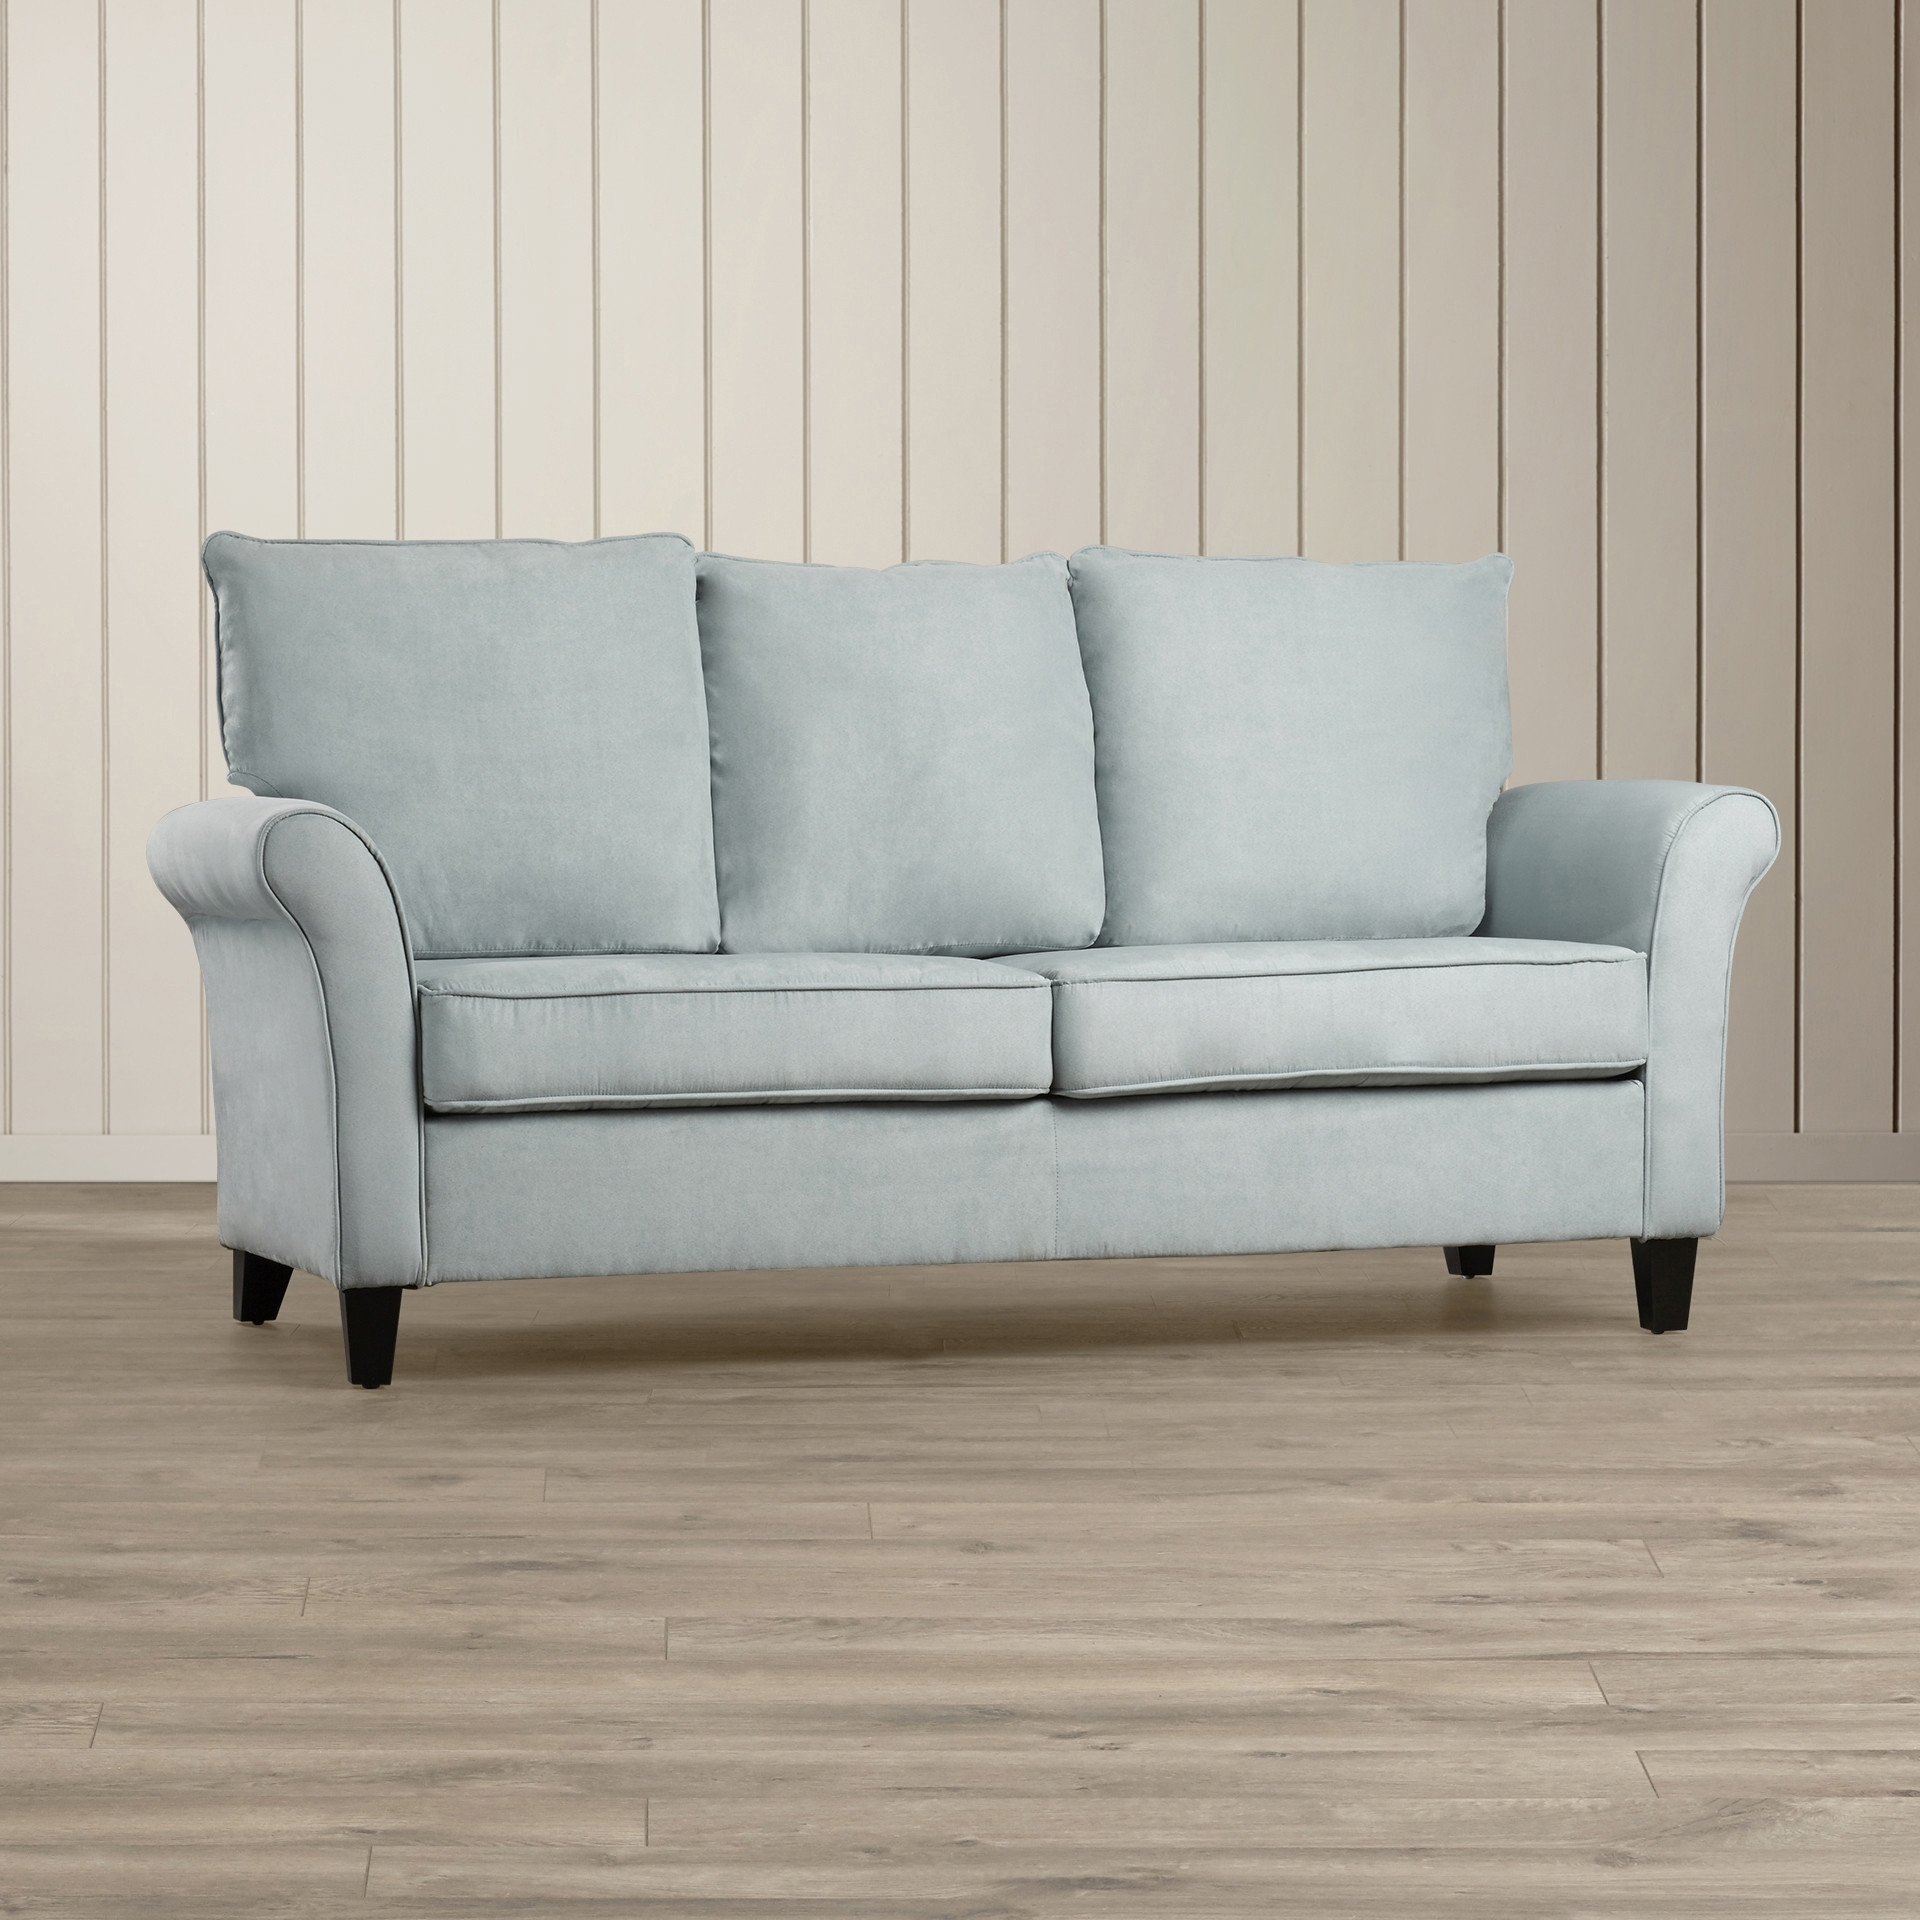 Fancy Sofas With Well Known Marvelous Wayfair Sofa About Fancy Wayfair Sofa 83 On Sofas And (View 12 of 15)